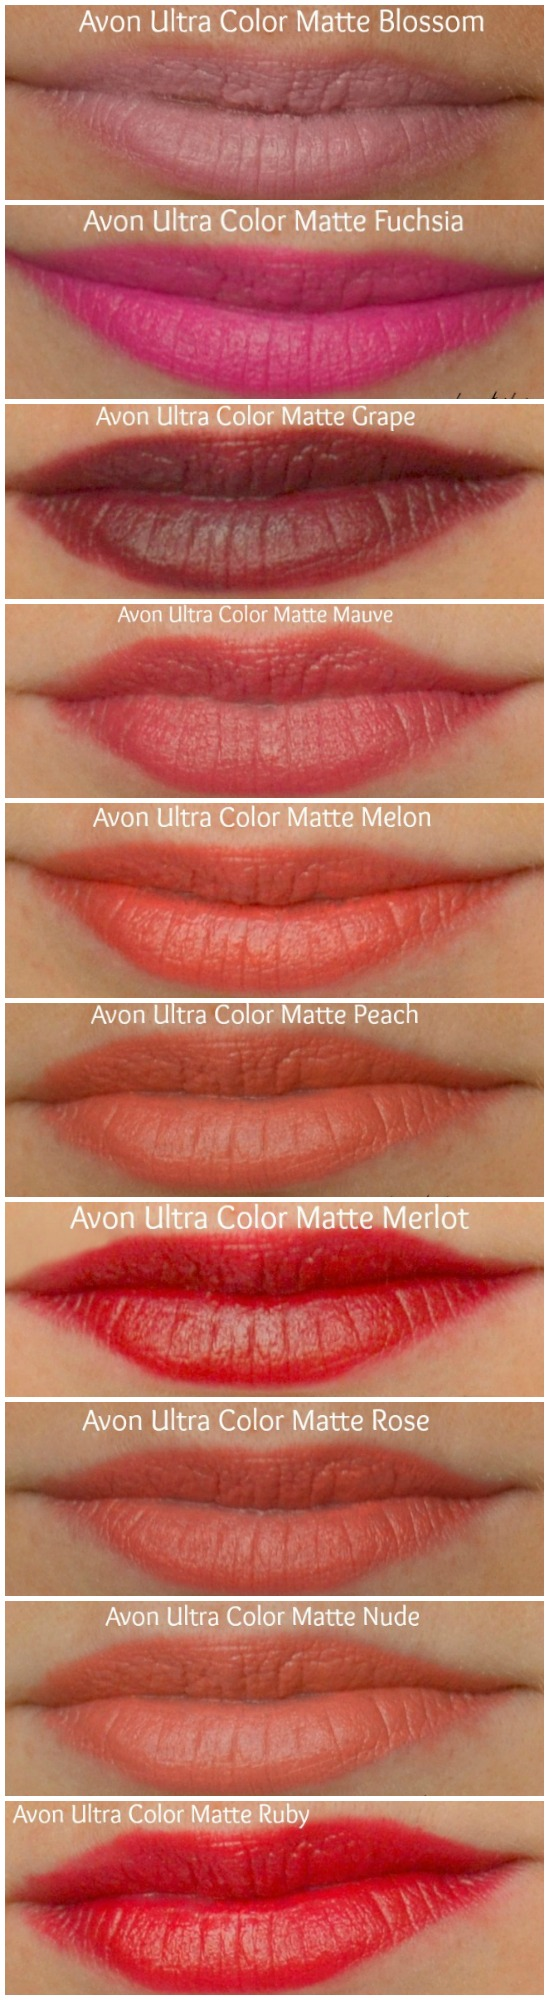 Avon Ultra Color Matte Lipstick Swatches Reviews Lipstick